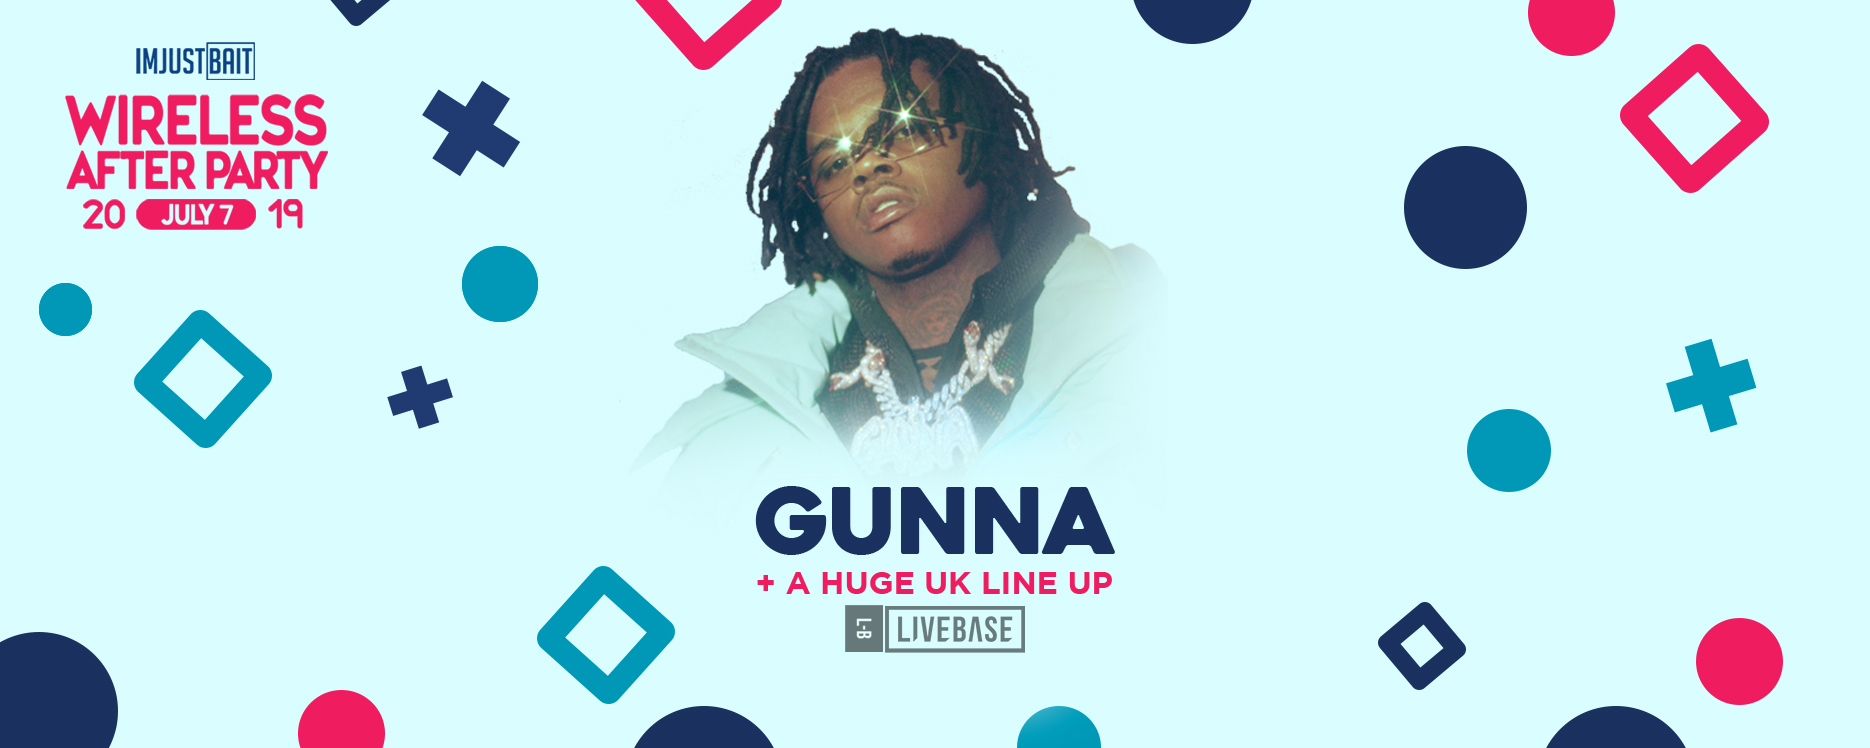 The Official Wireless After Party With GUNNA – Hosted by IMJUSTBAIT!